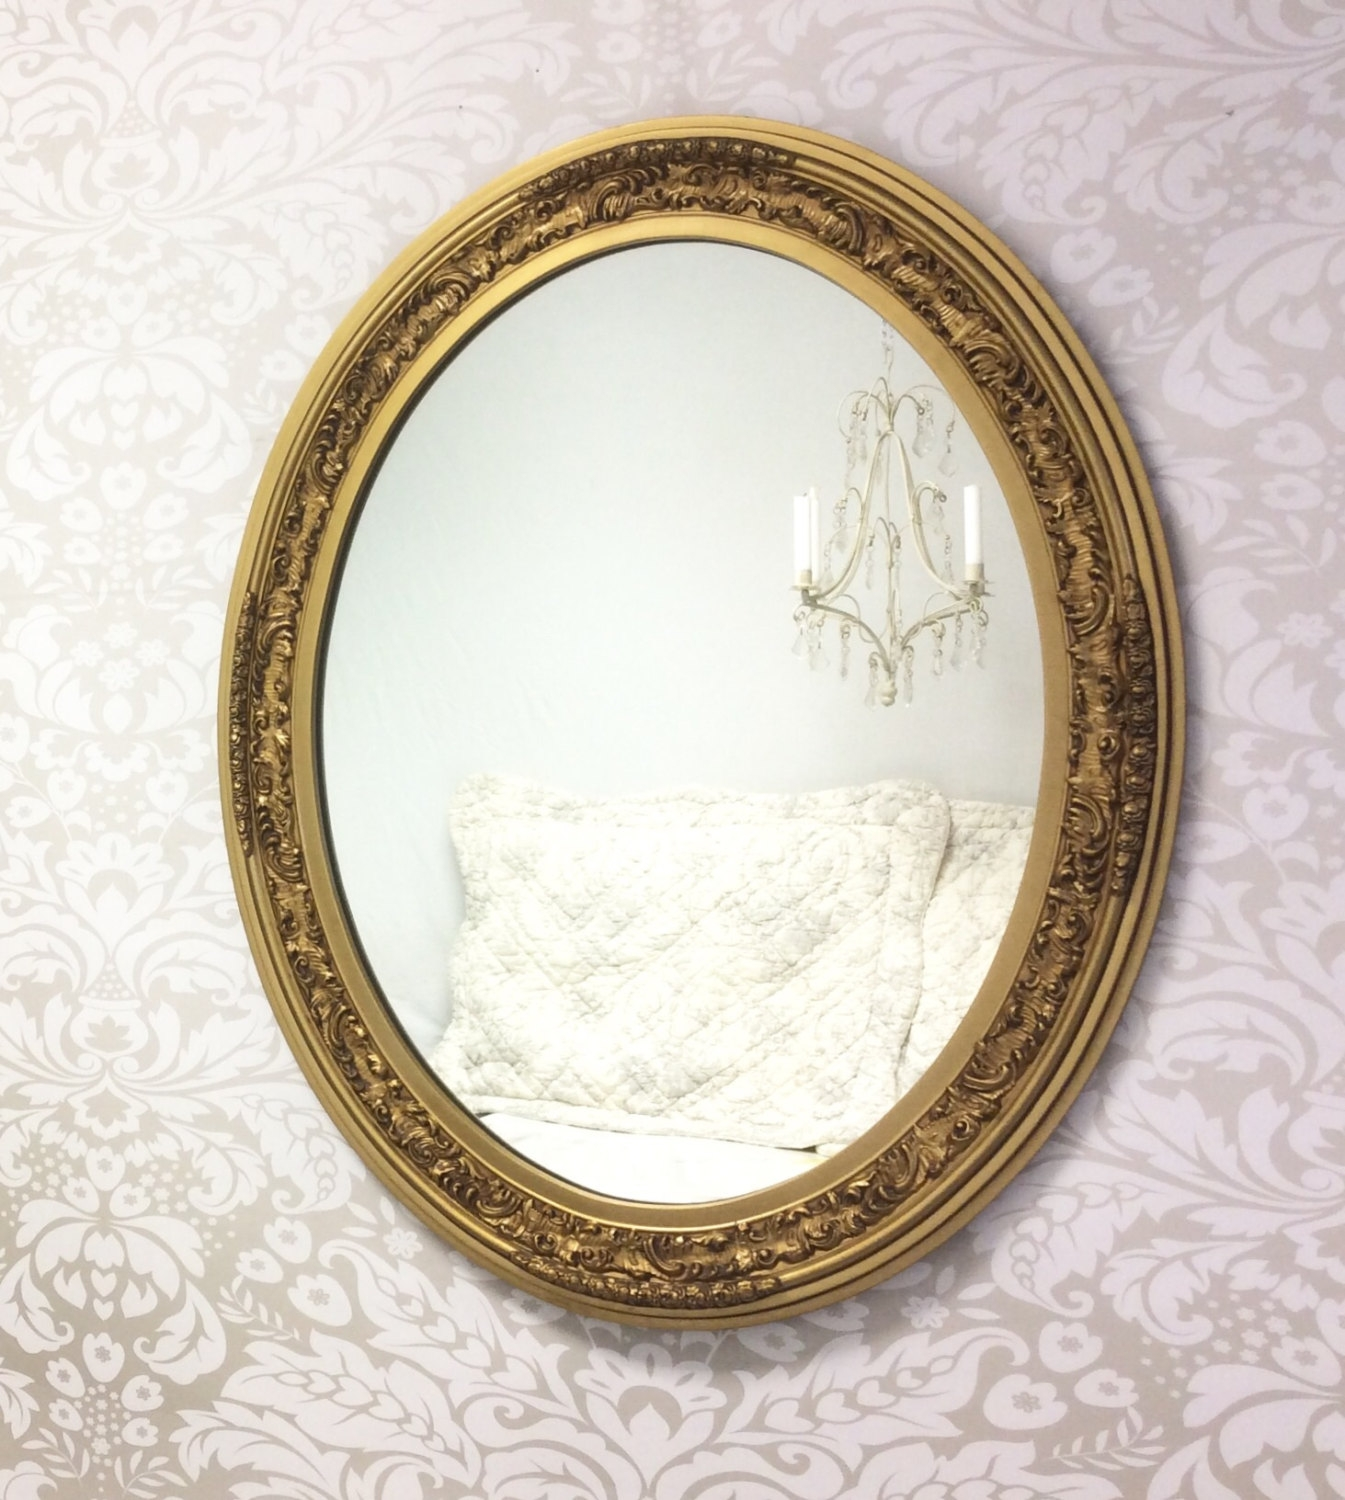 Ornate Oval Mirror Etsy Within Mirror Ornate (Image 7 of 15)